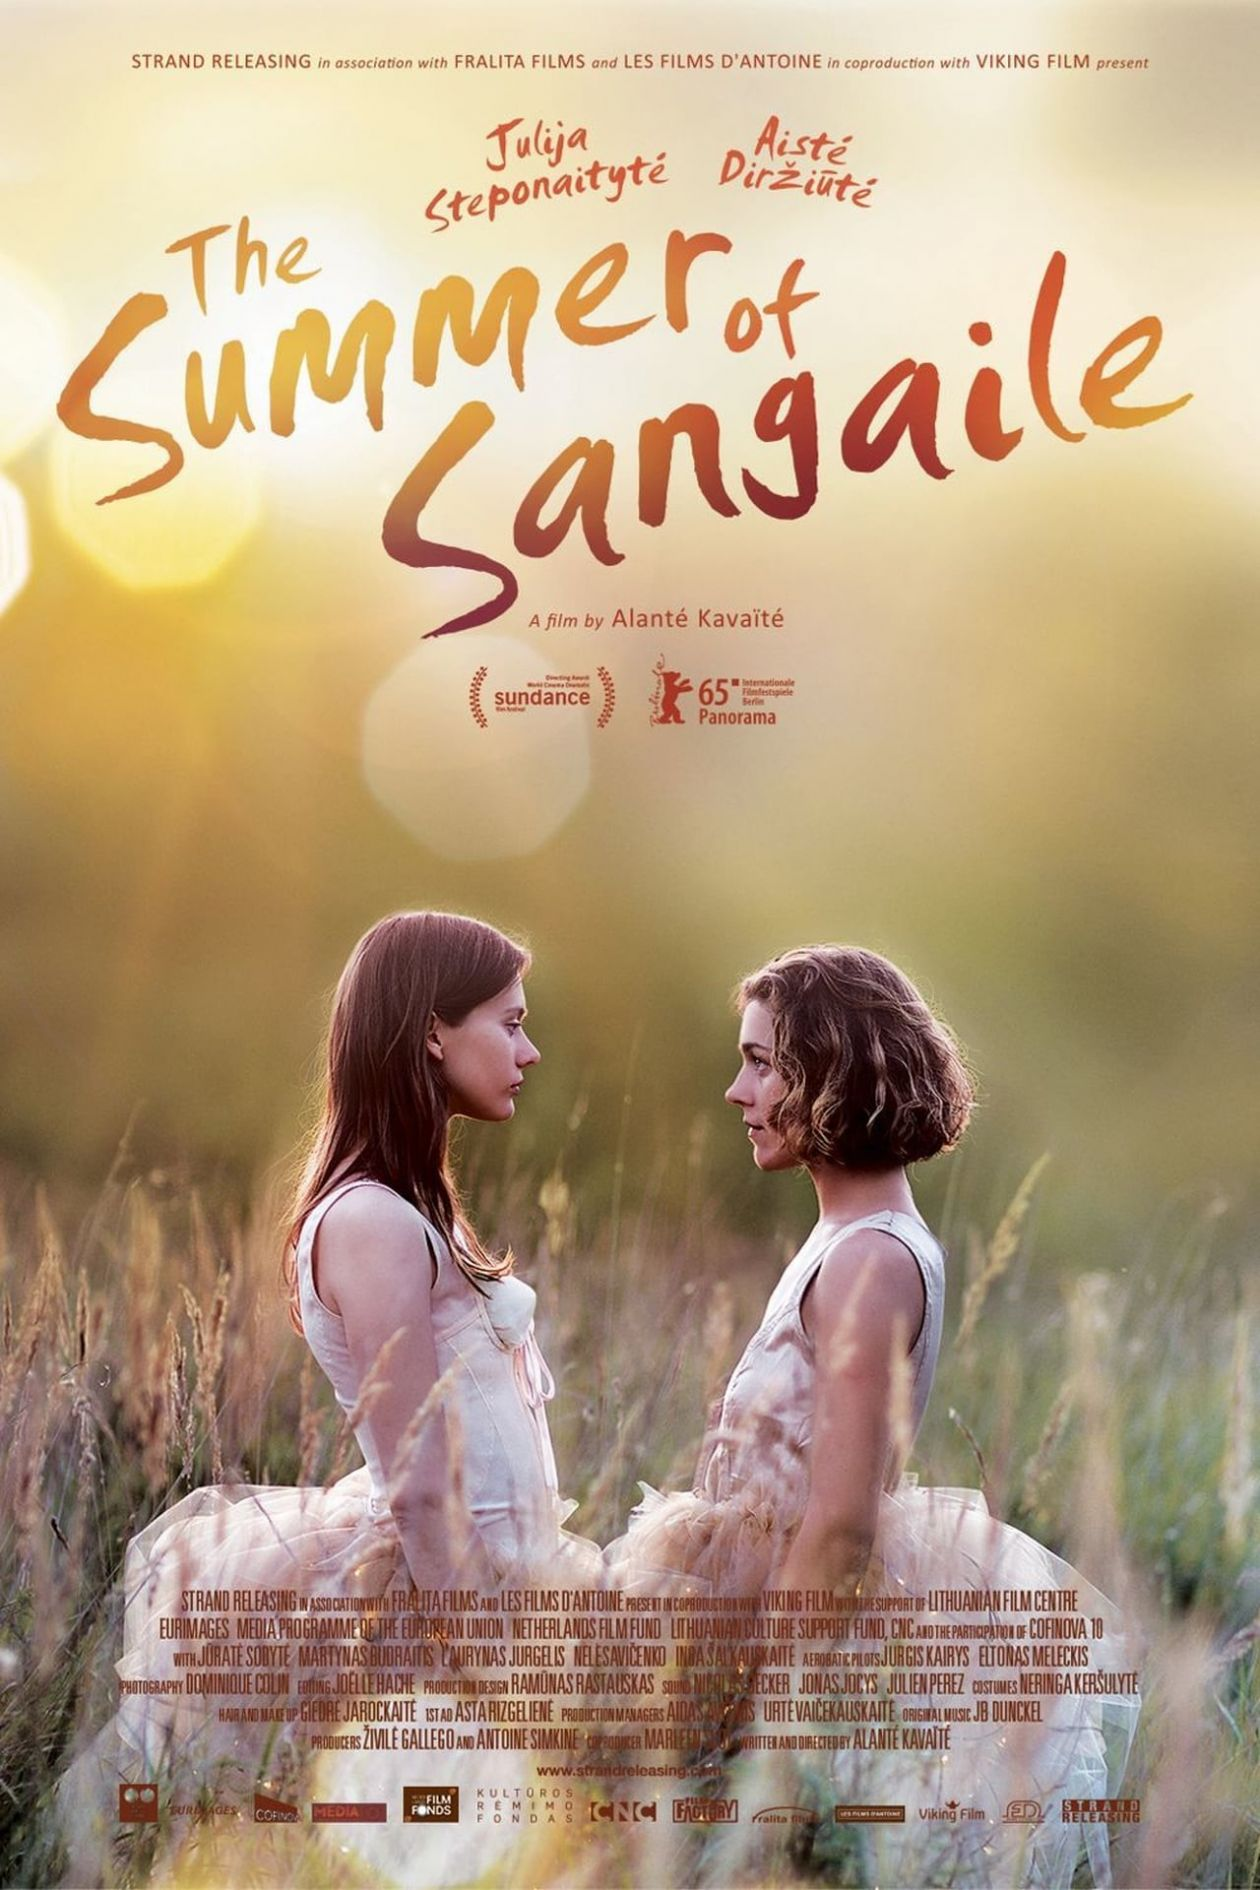 Julija Steponaityte / Aiste Dirziute (Aistė Diržiūtė) actresses | The Summer of Sangailé / Alanté Kavaïté 2015 Movie Poster Affiche film